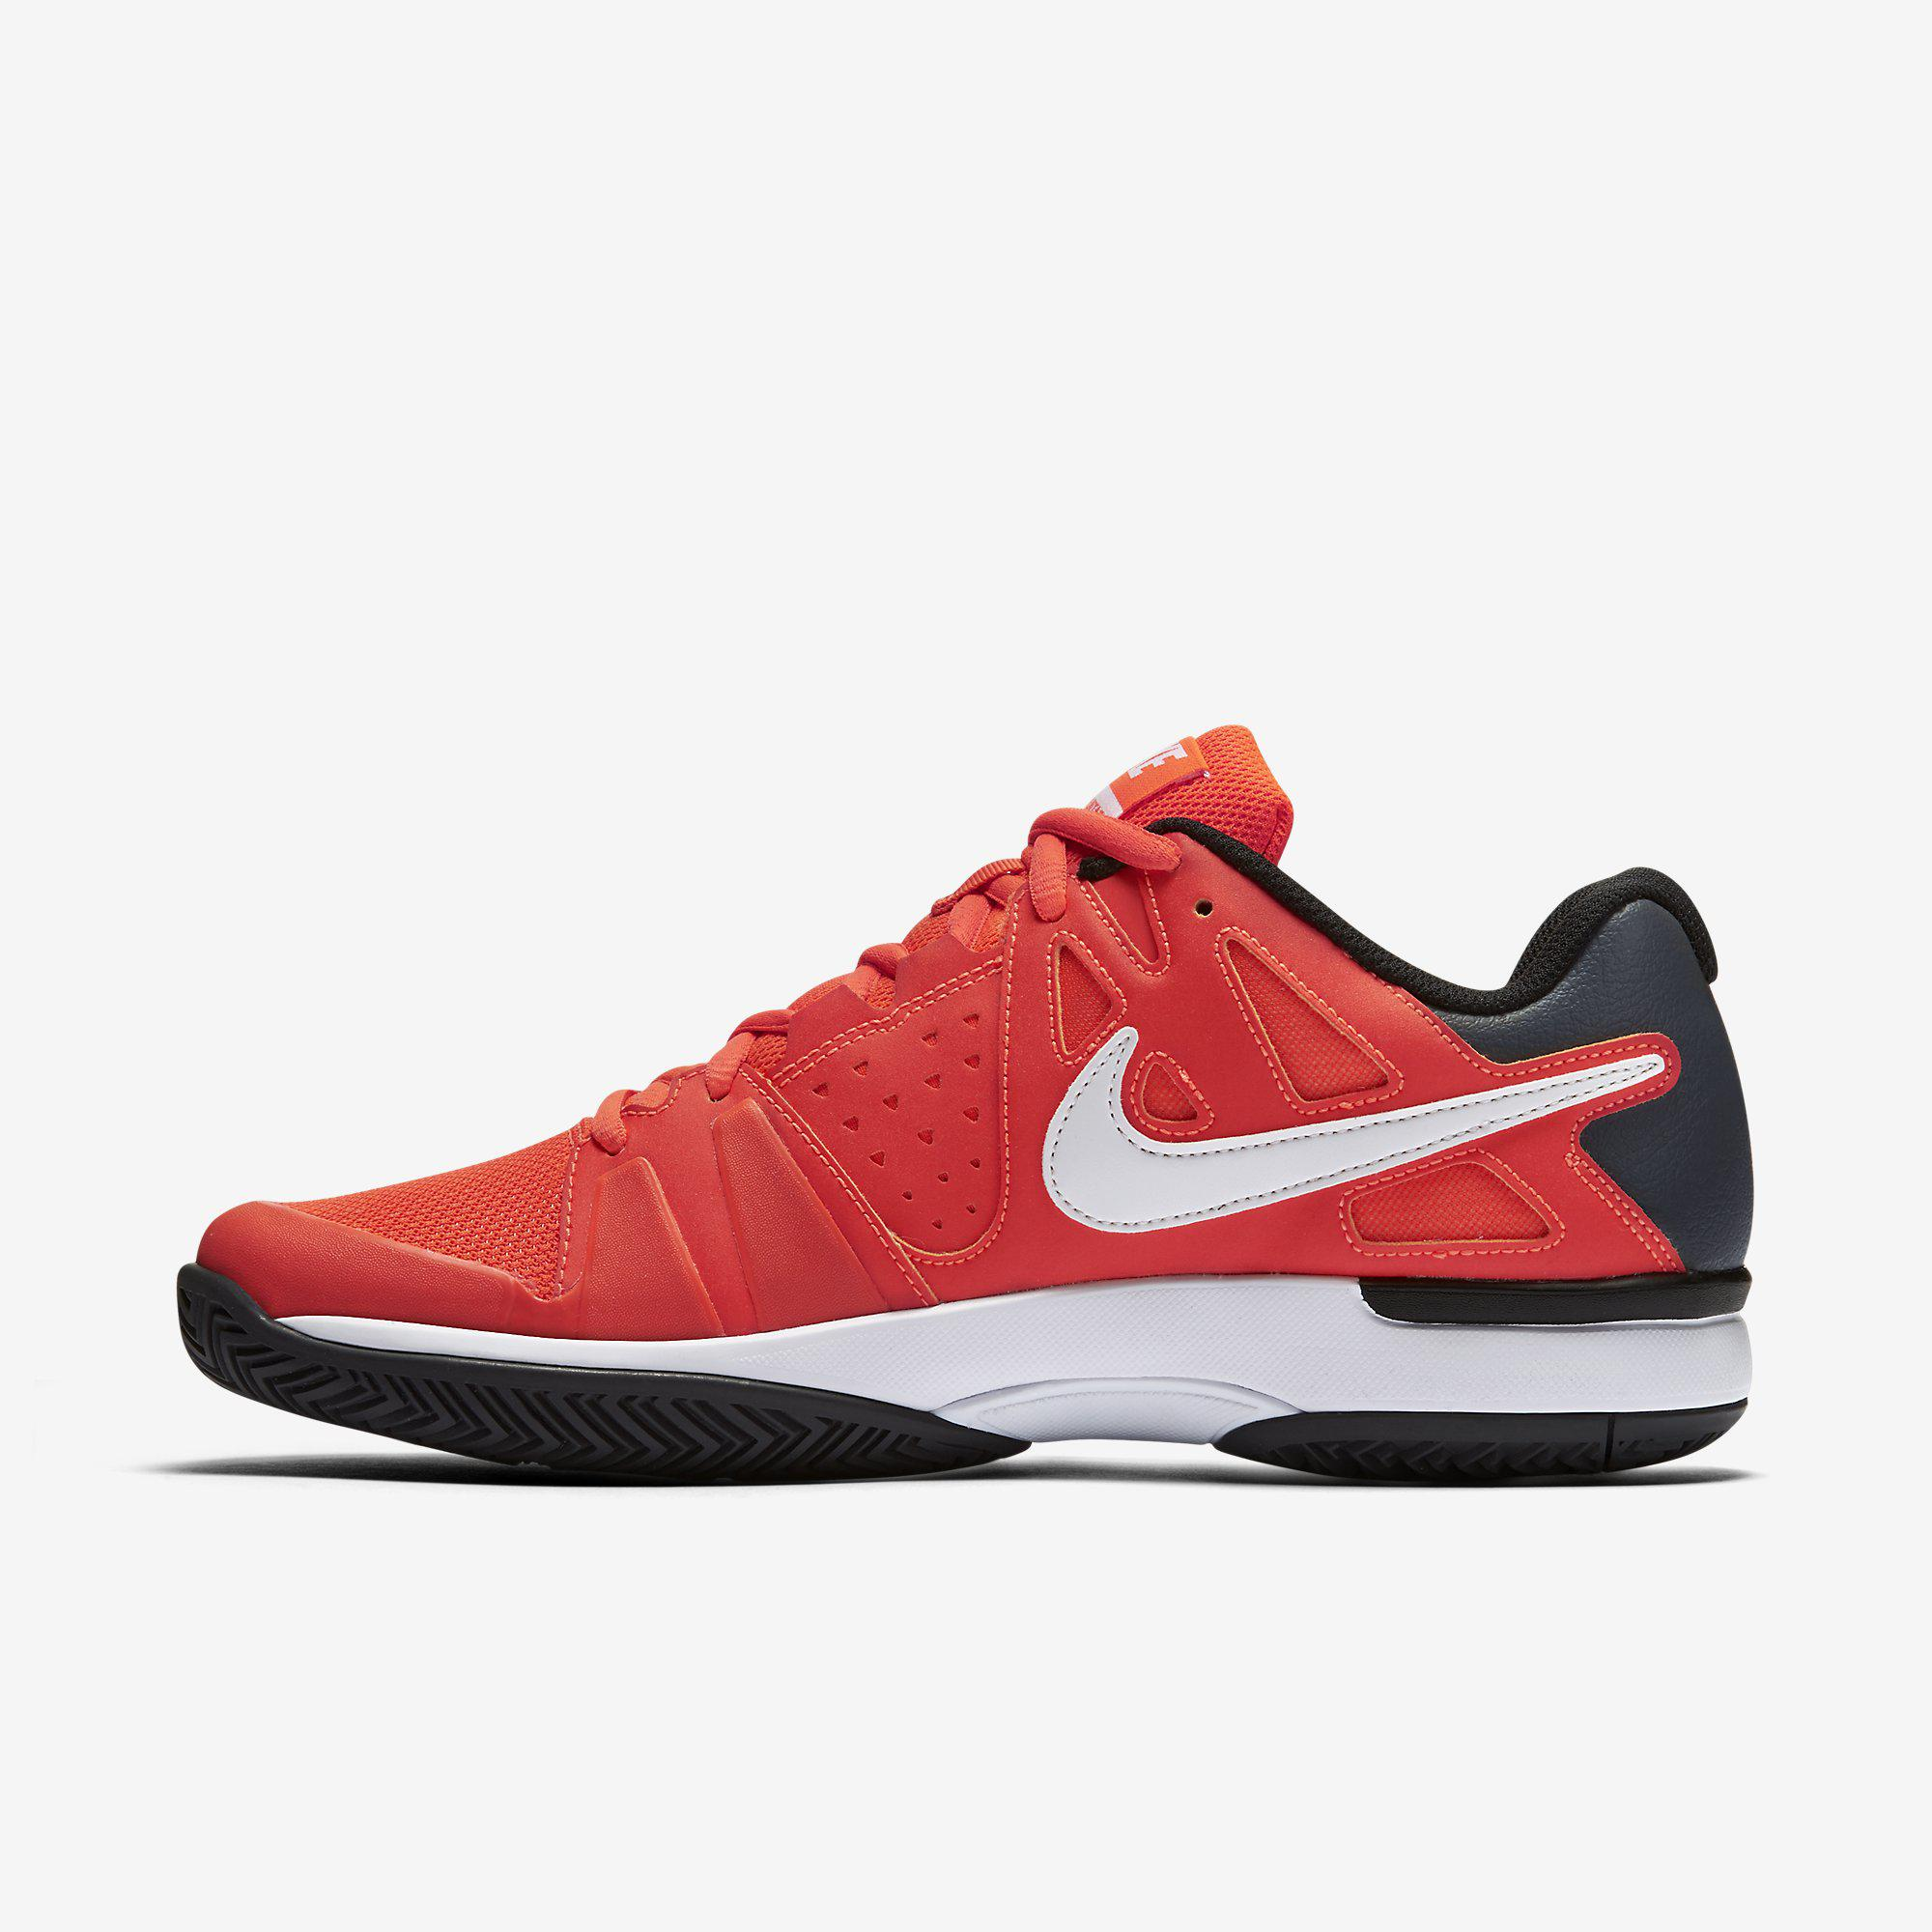 online retailer facad 2ece4 Nike Mens Air Vapor Advantage Tennis Shoes - Orange Black